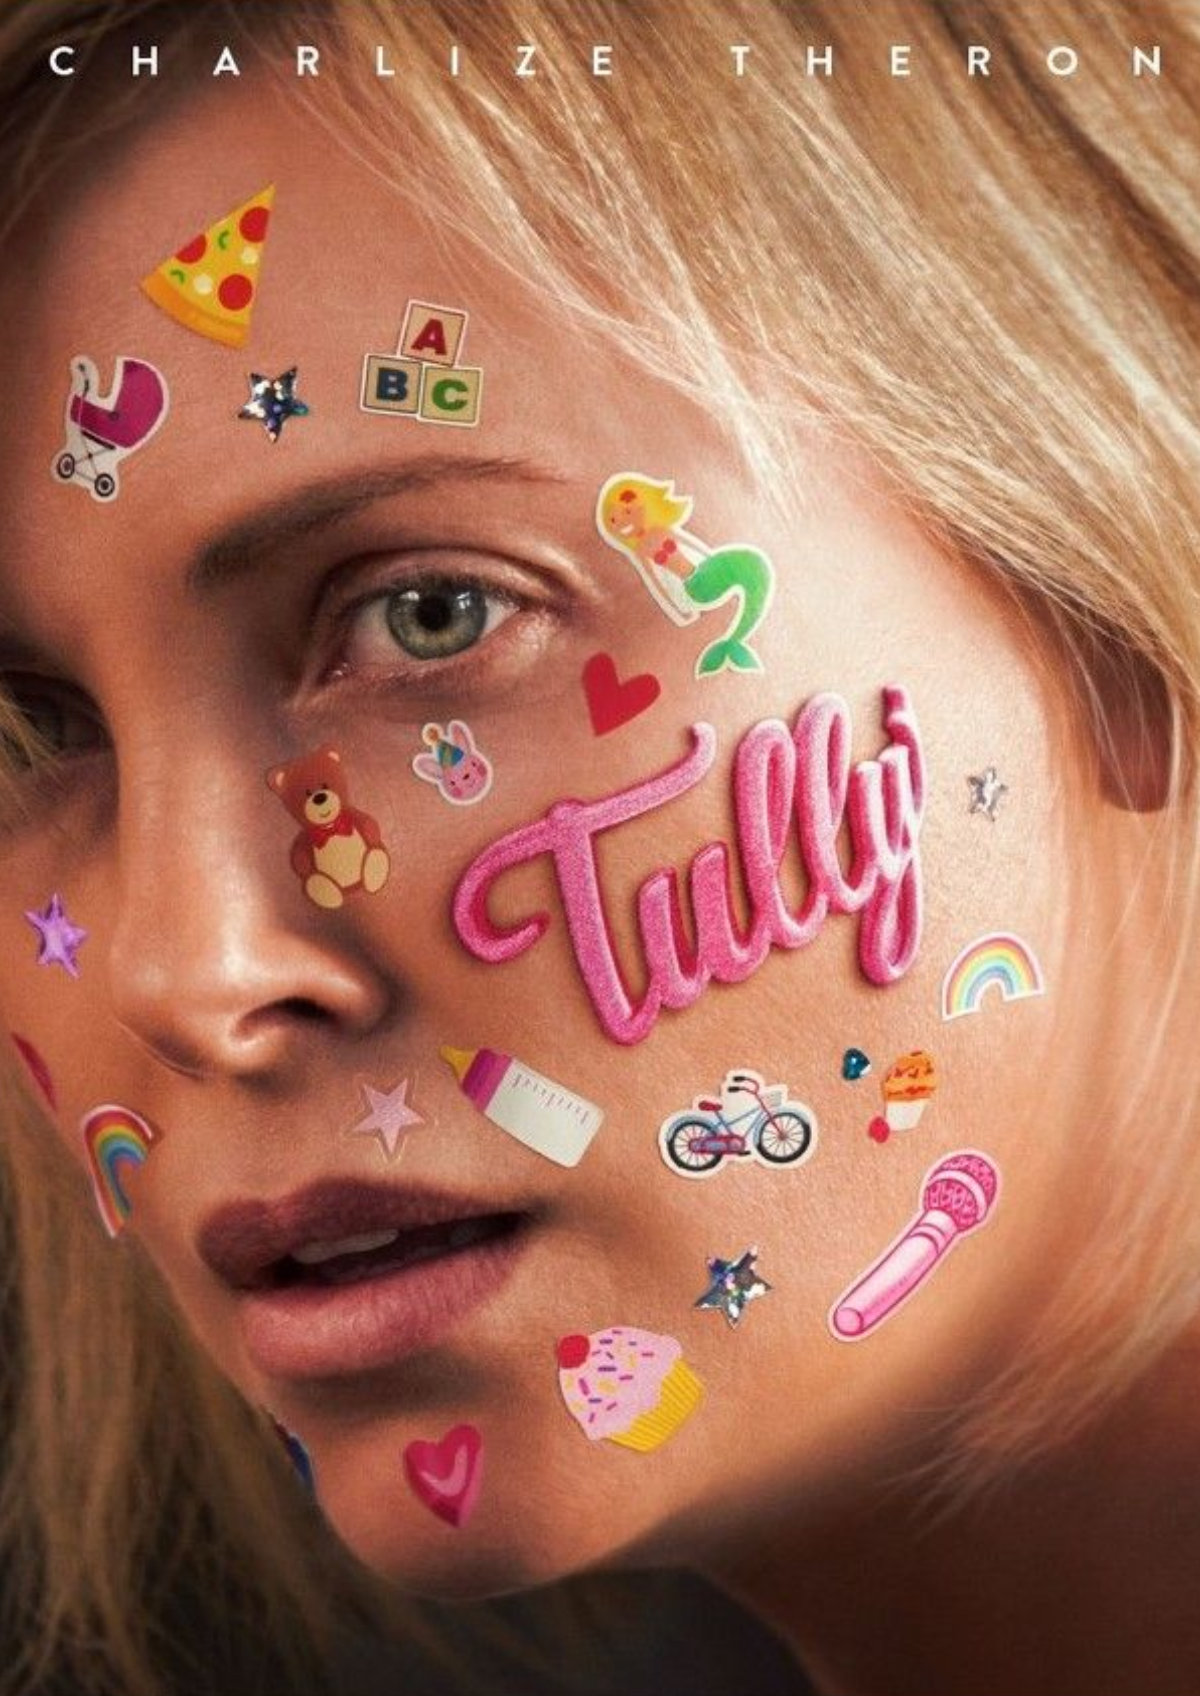 'Tully' movie poster